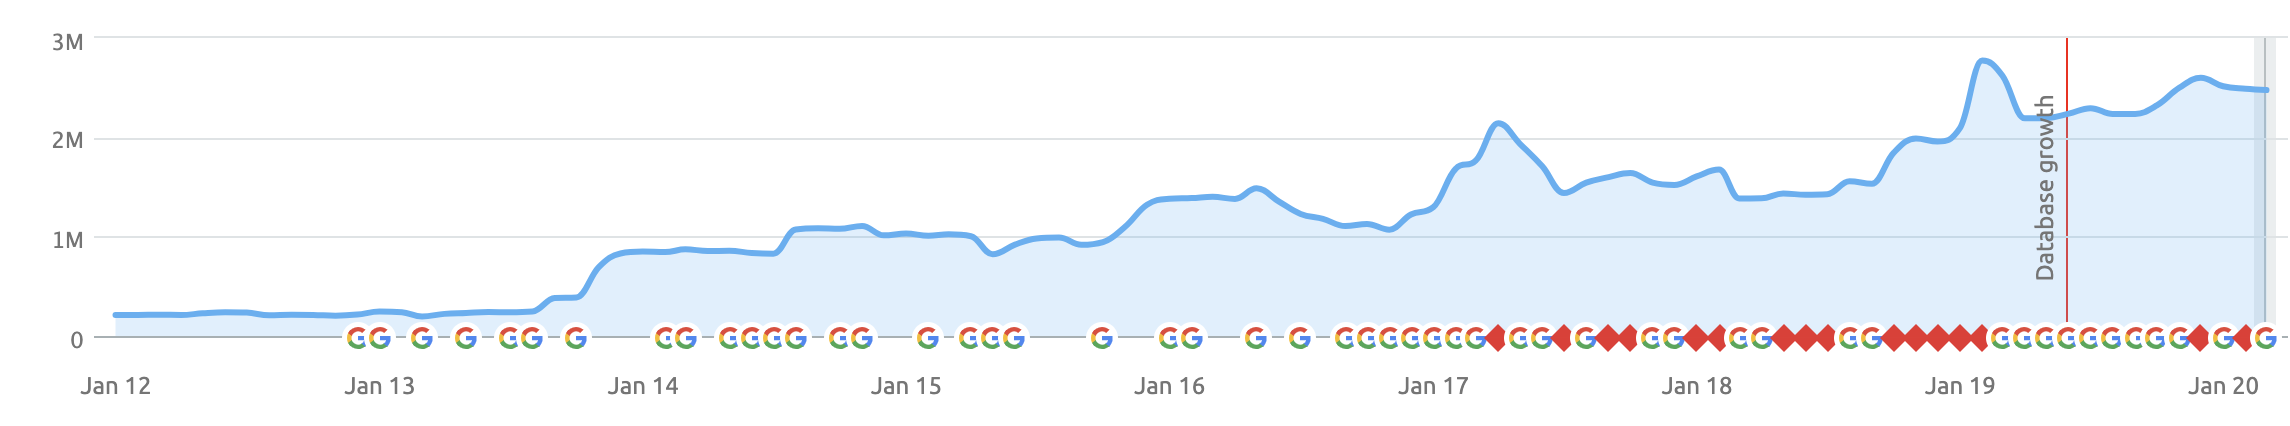 Organic Traffic Rank Growth